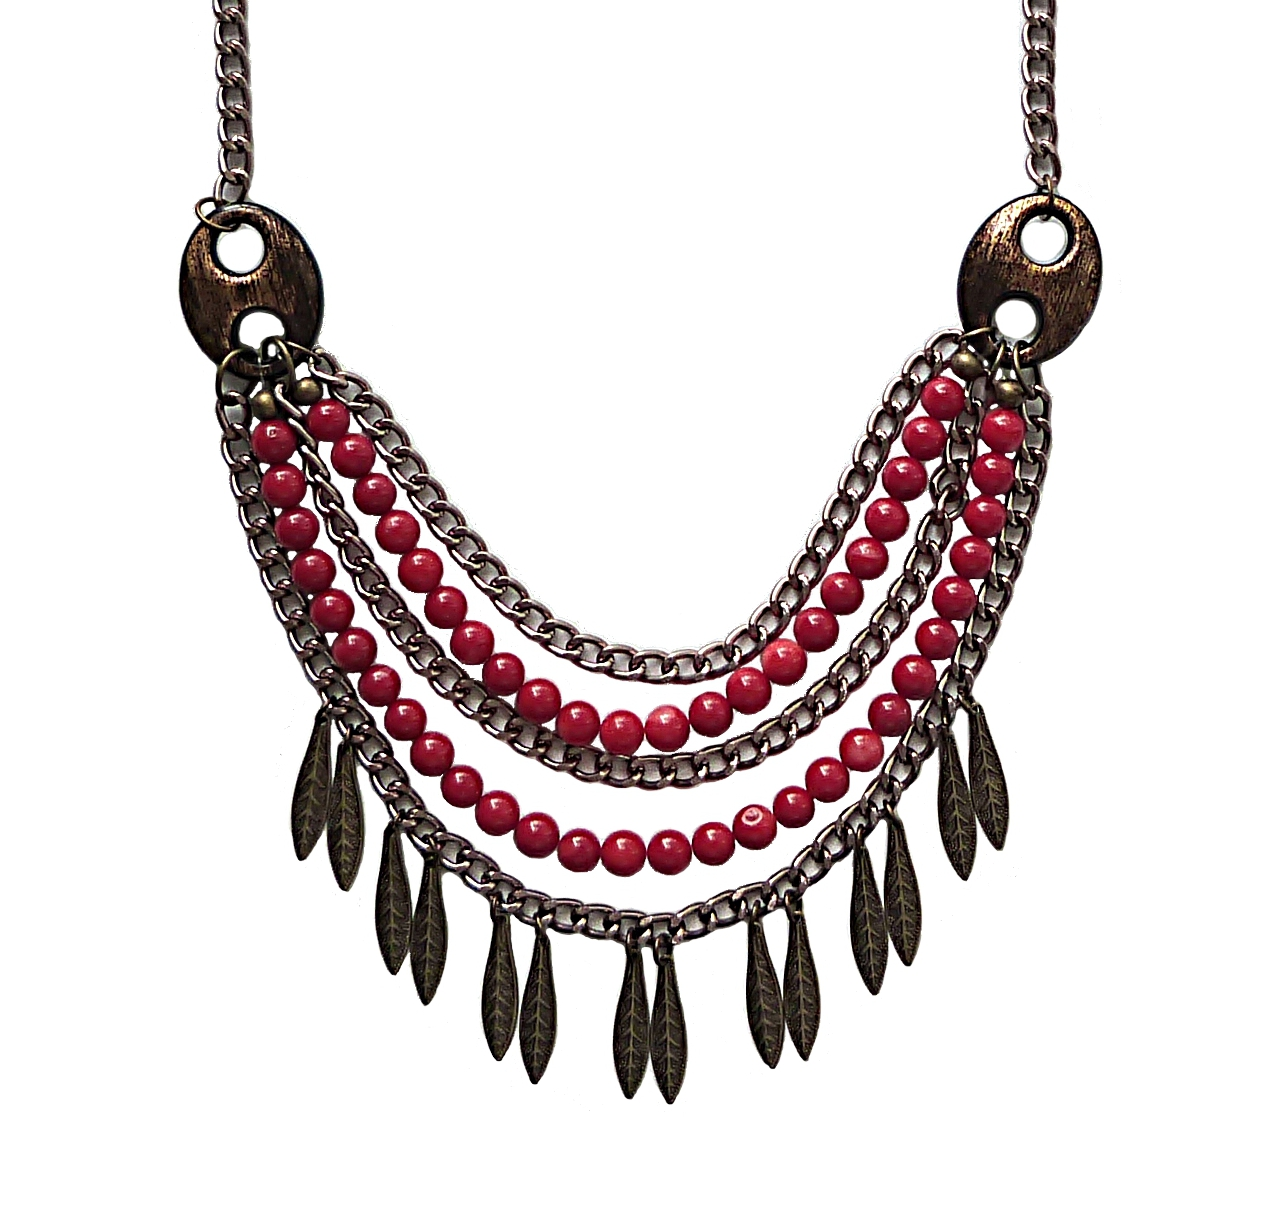 product fashion street gisel bordeaux necklace necklaces online chic pendant jewelry high buy